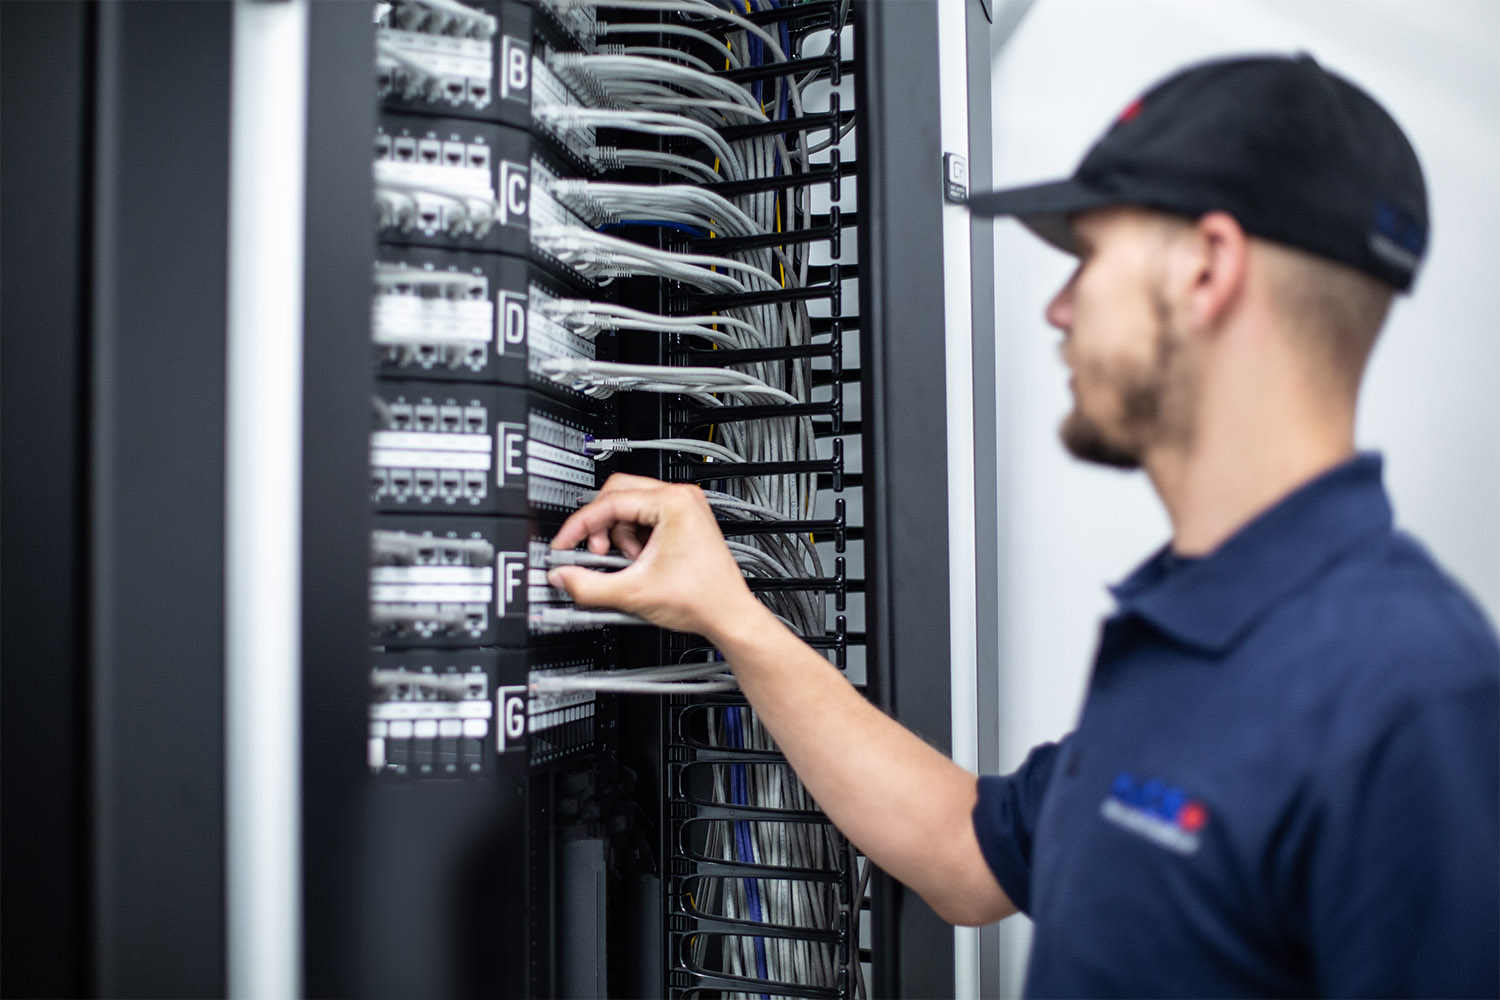 Structured cabling companies based in the Chicago area and Lake County, IL